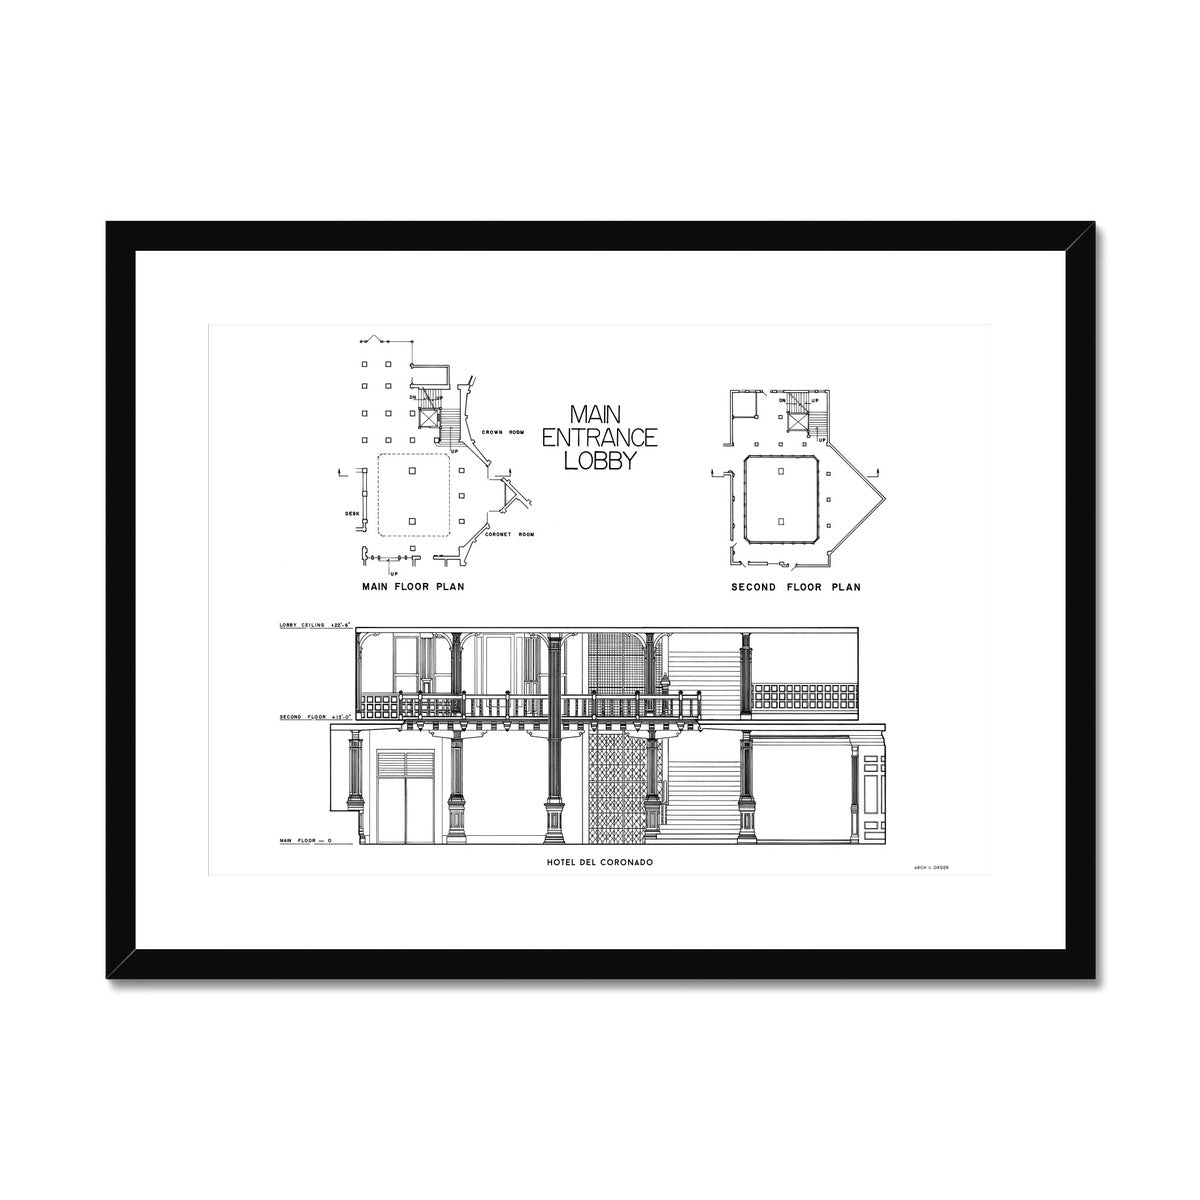 Hotel Del Coronado - Lobby Cross Section - White -  Framed & Mounted Print